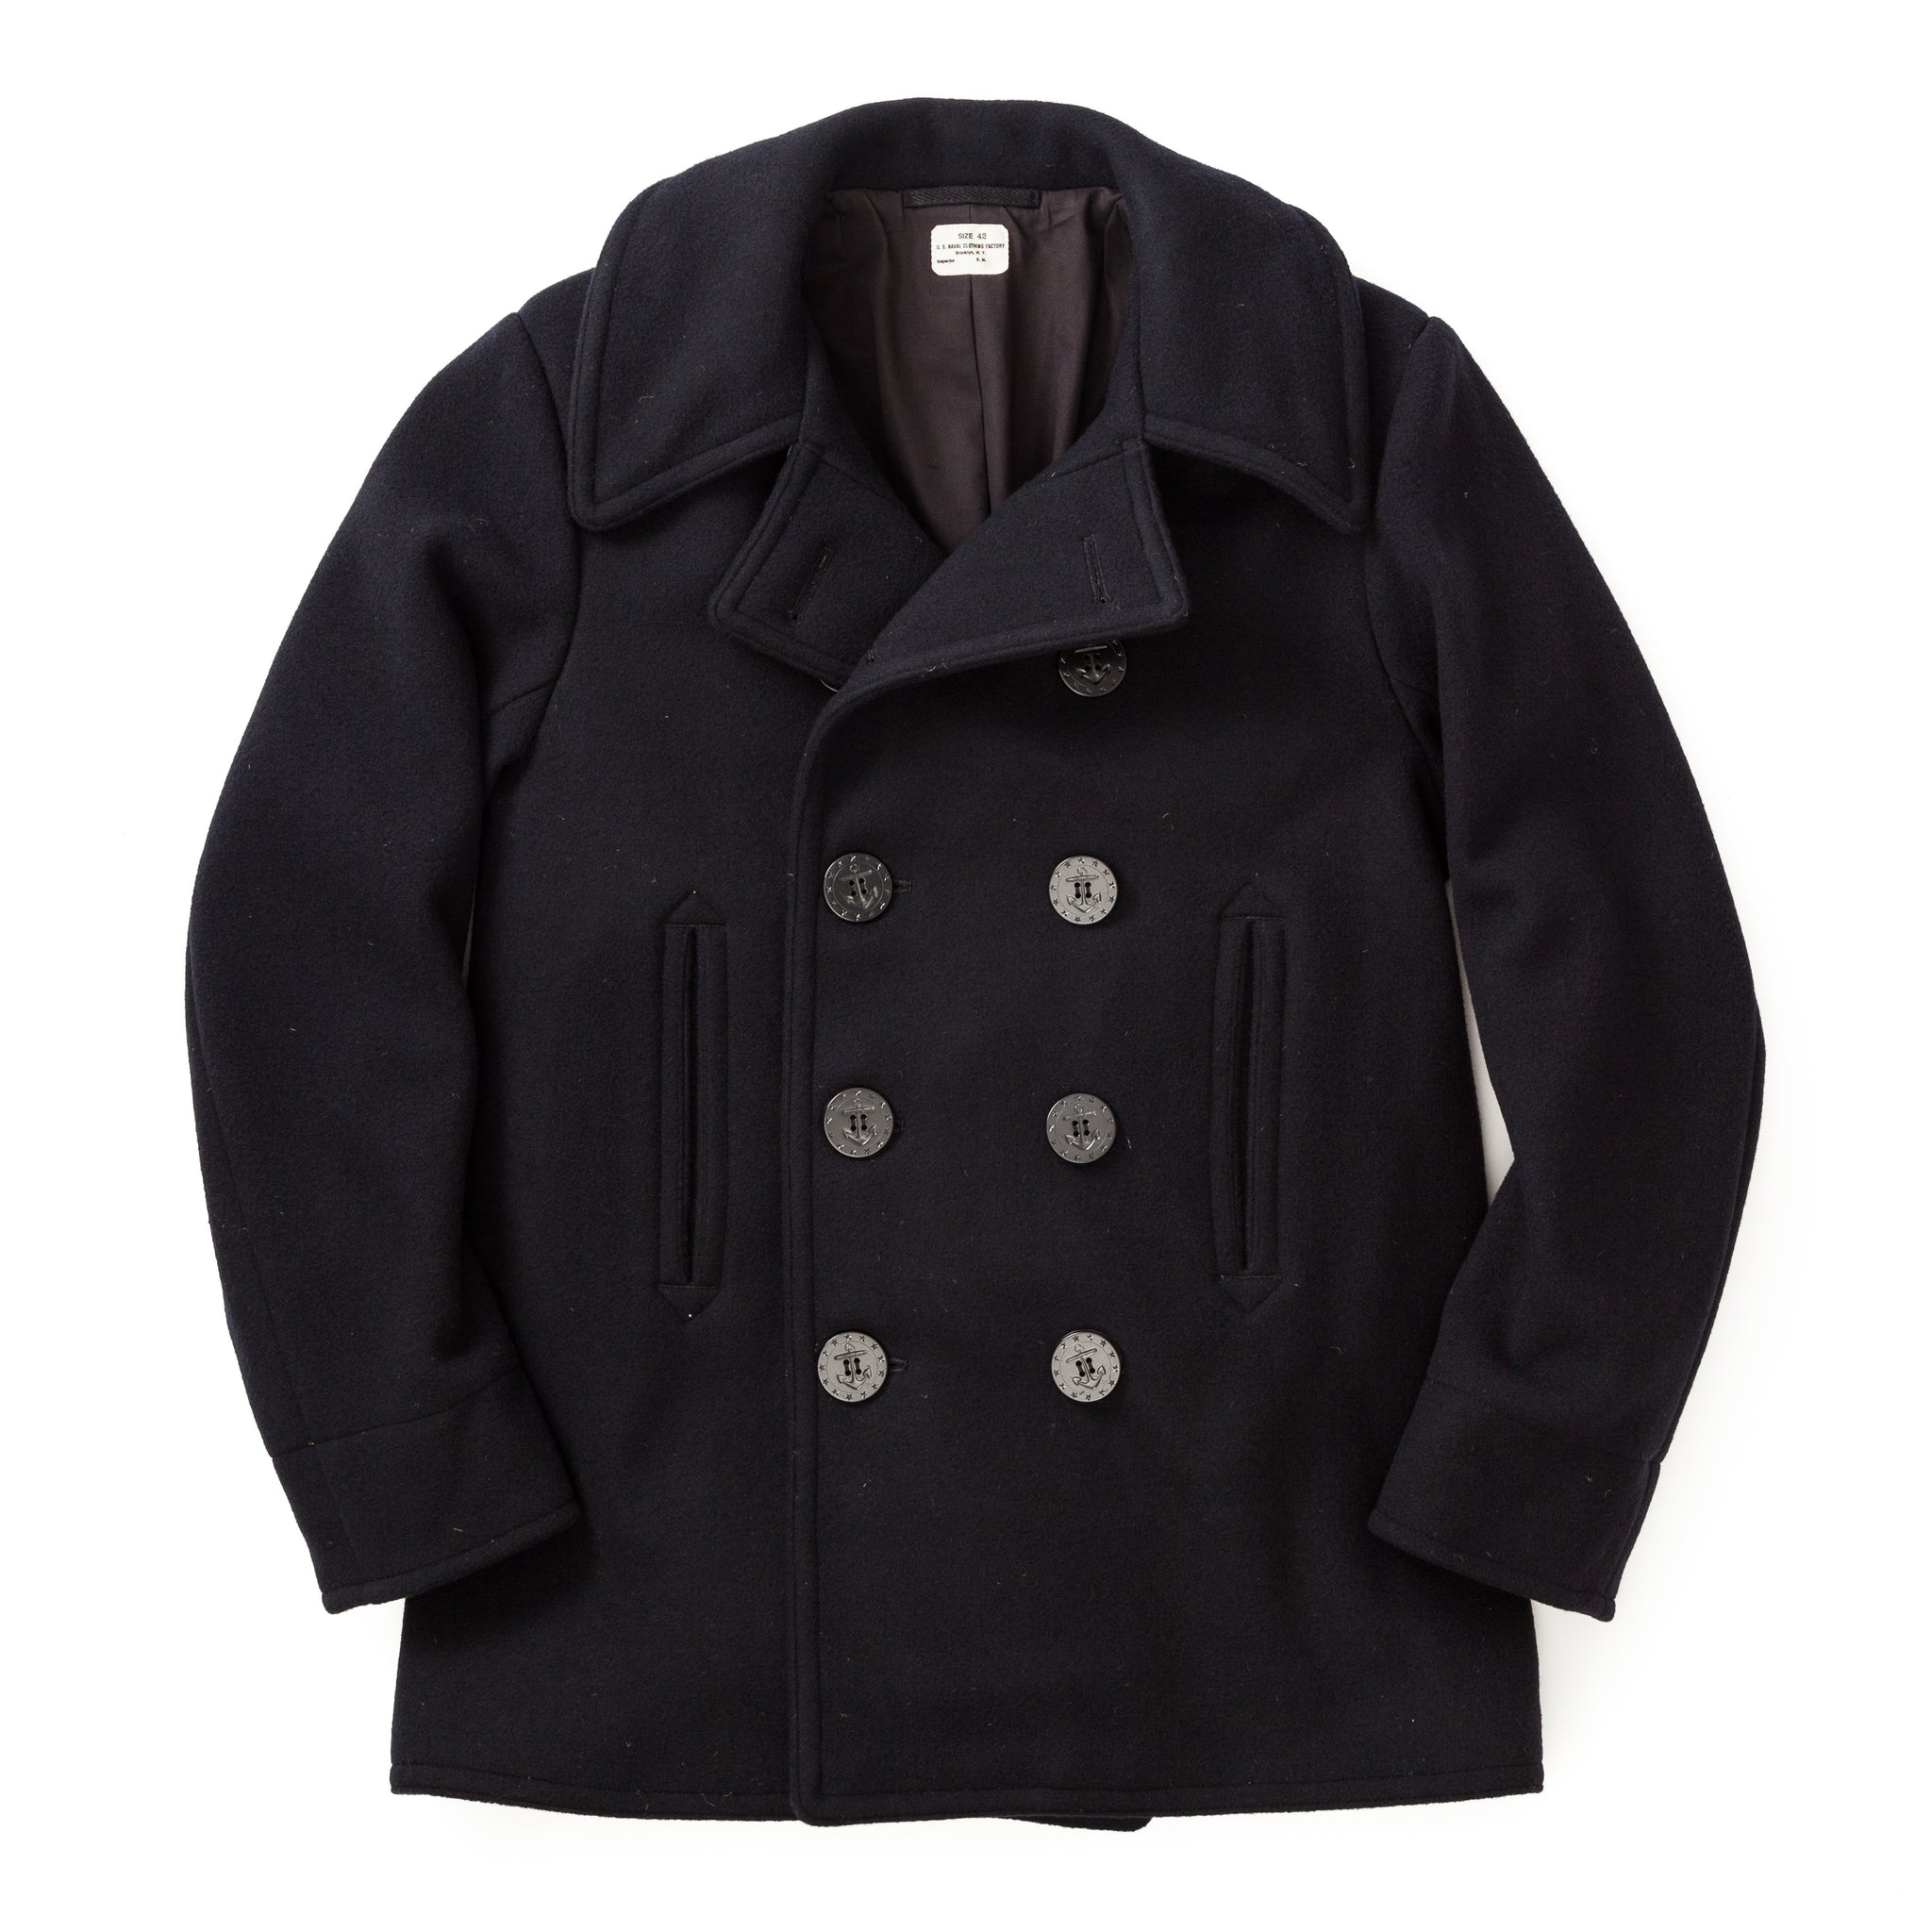 The Real McCoy's WWII U.S. Navy Pea Coat MJ18131